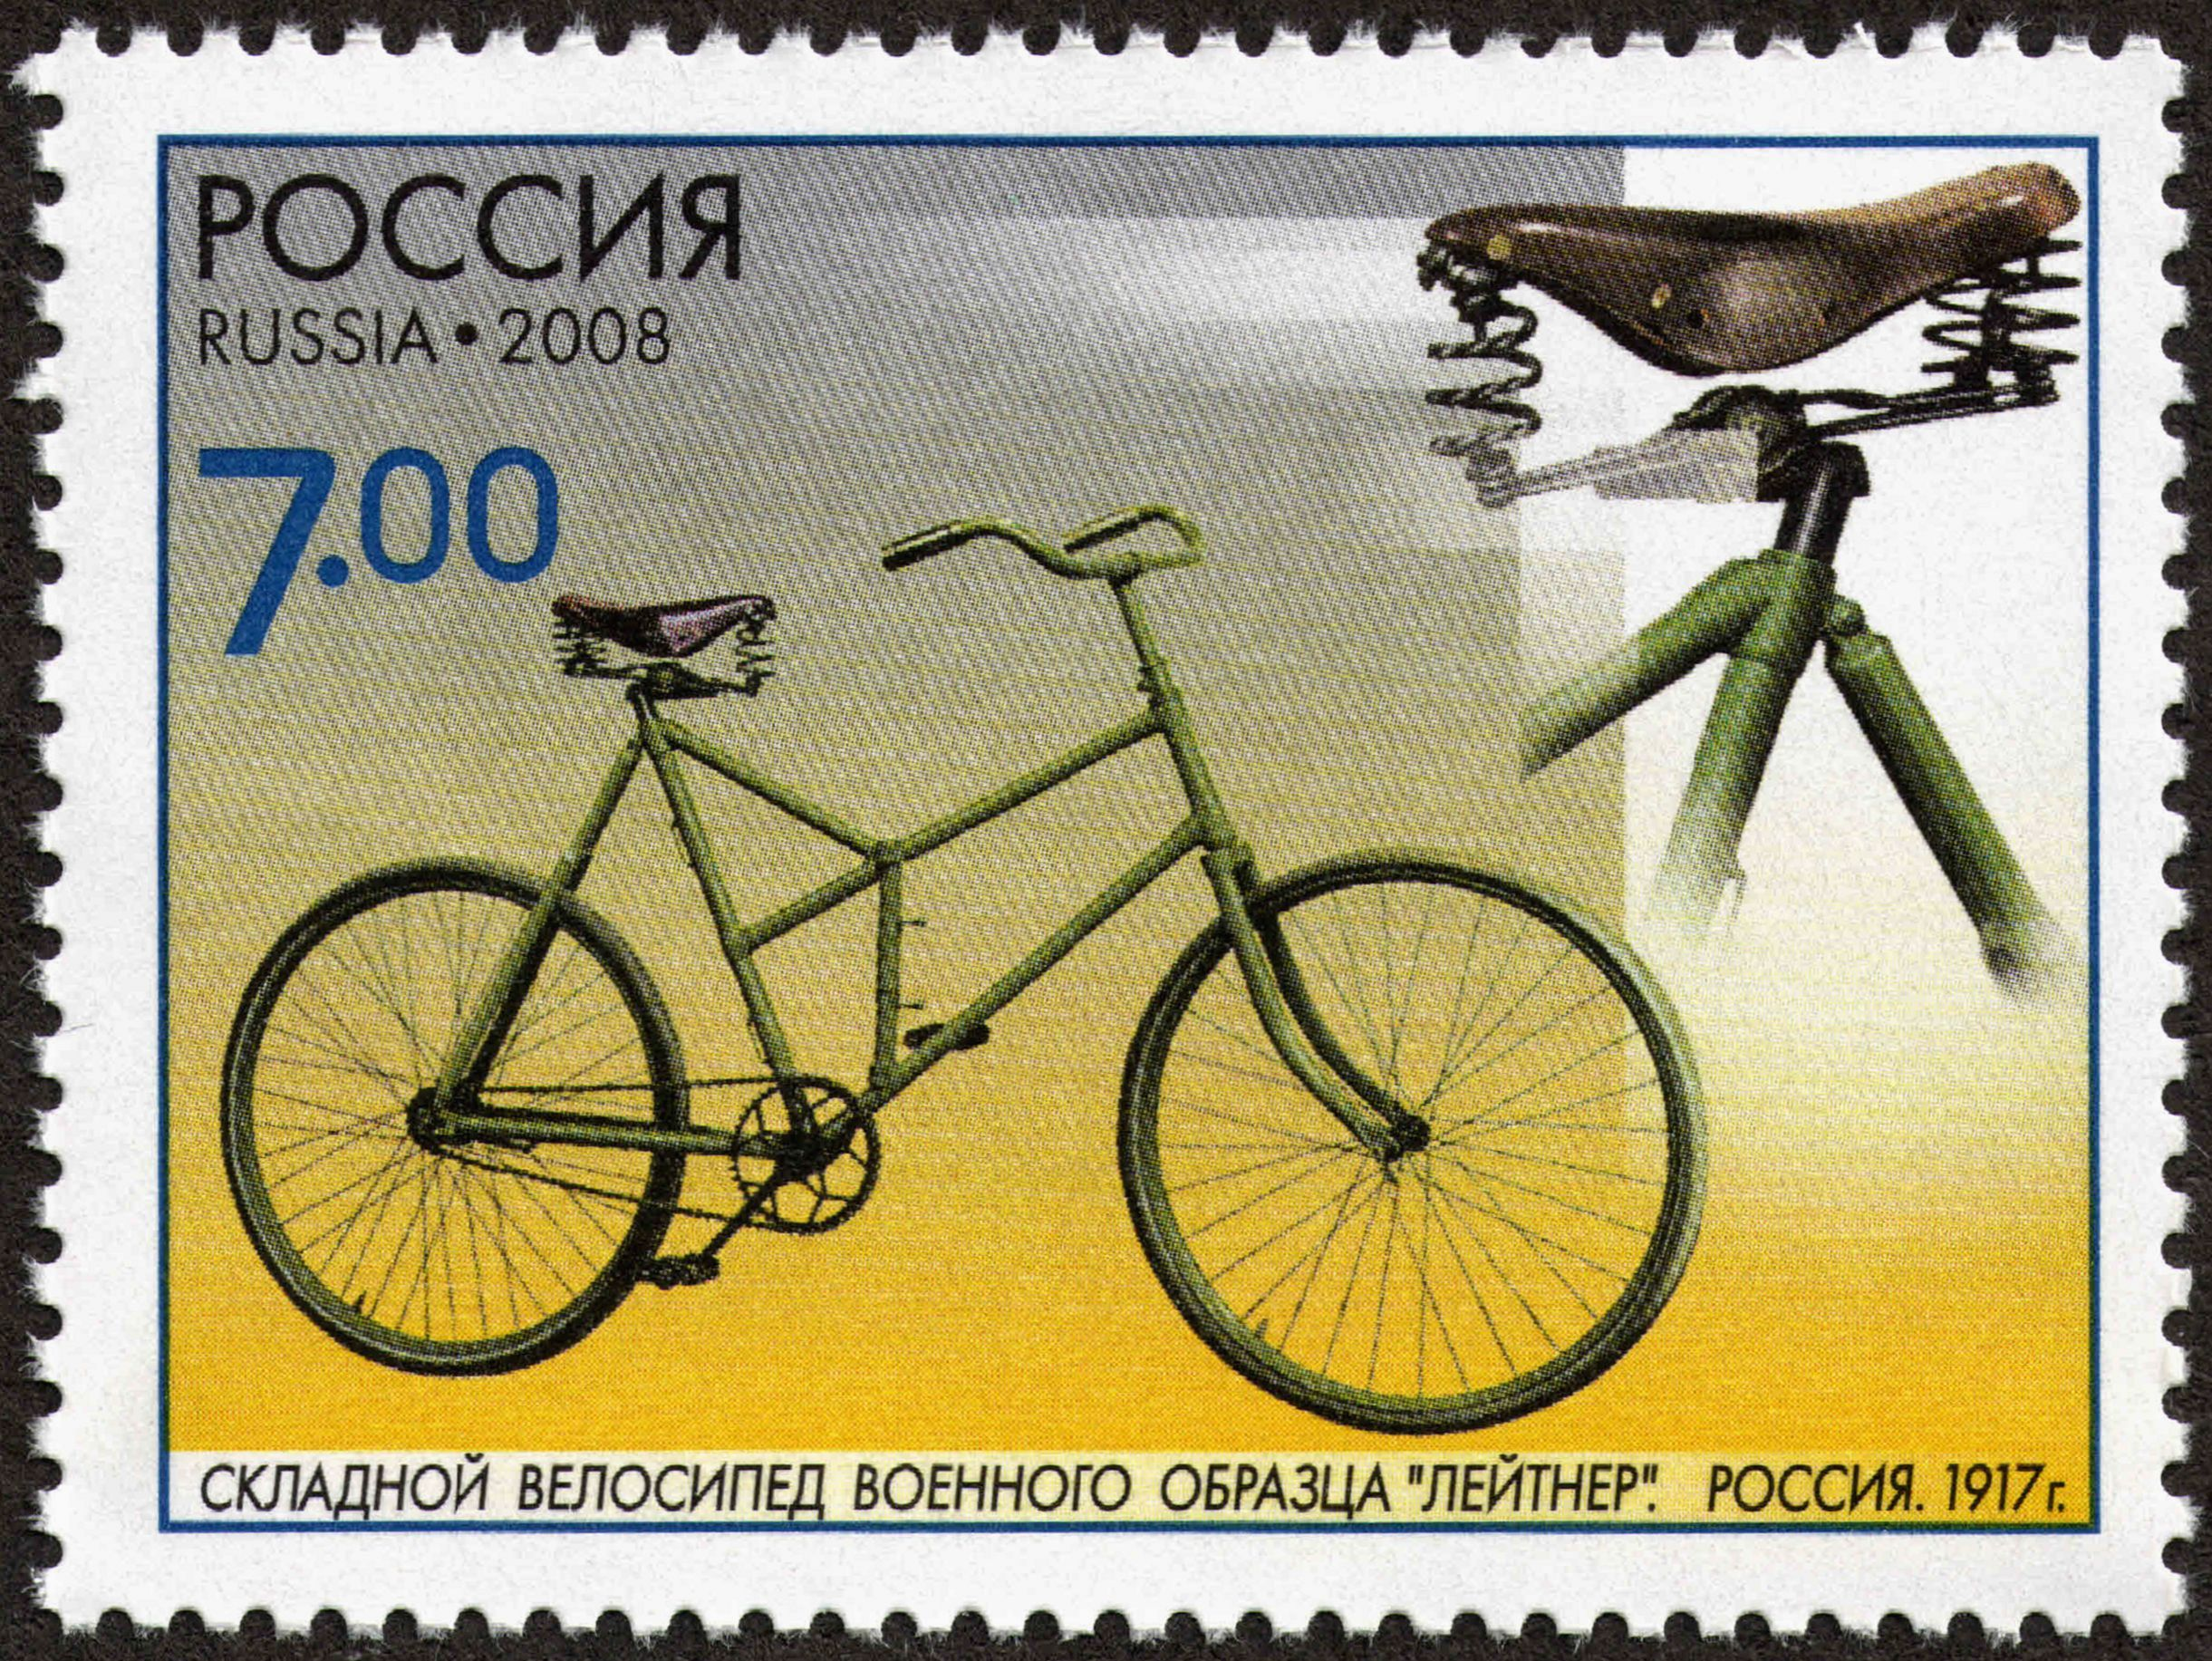 File:Stamp of Russia 2008 No 1286.jpg